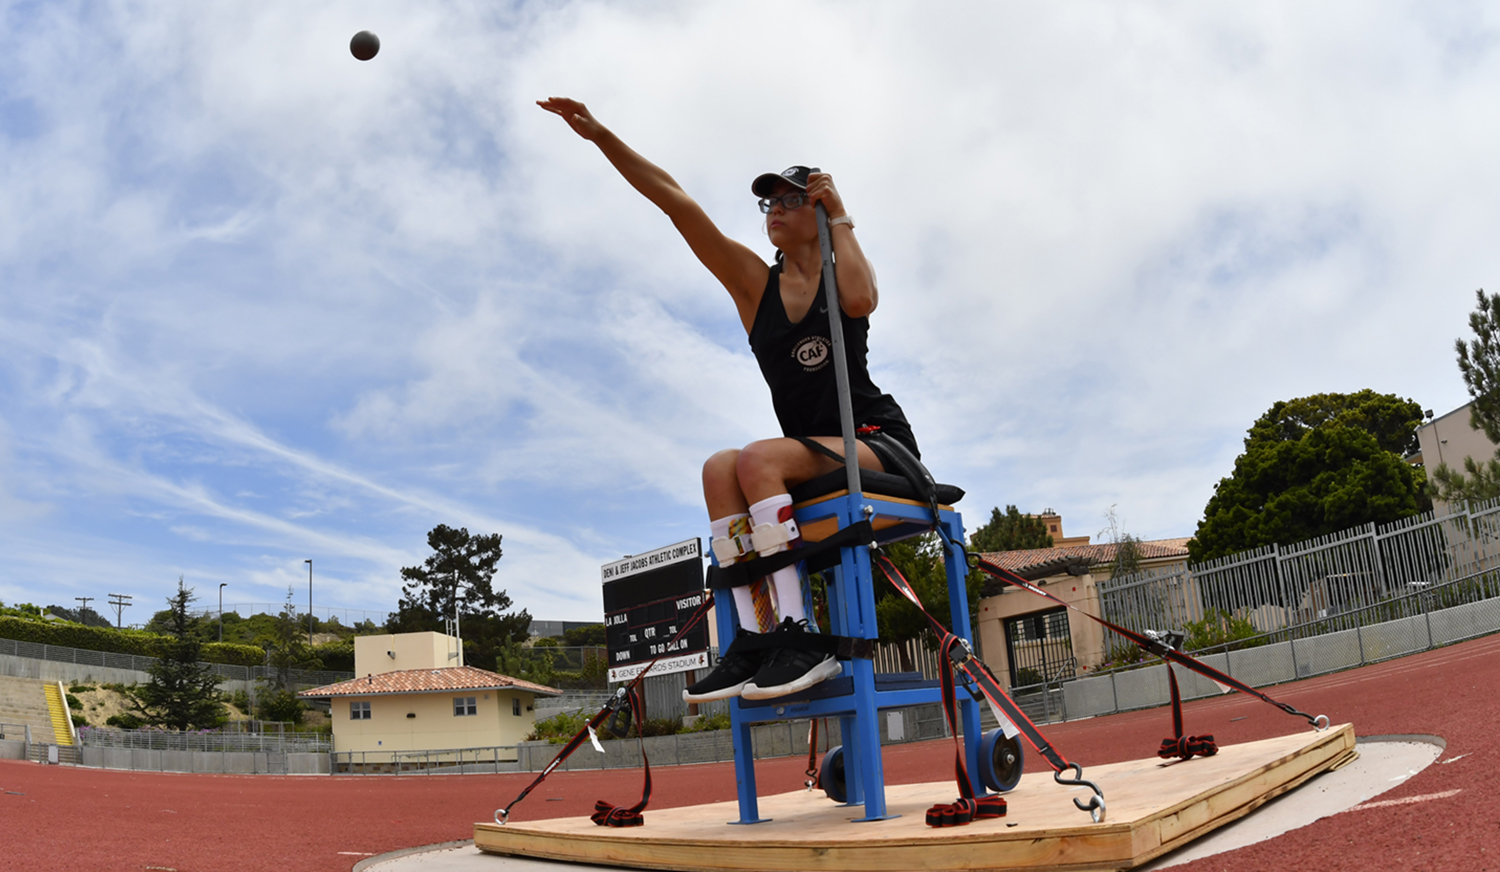 Ruby on her throwing chair for CAF HS Adaptive Track and Field